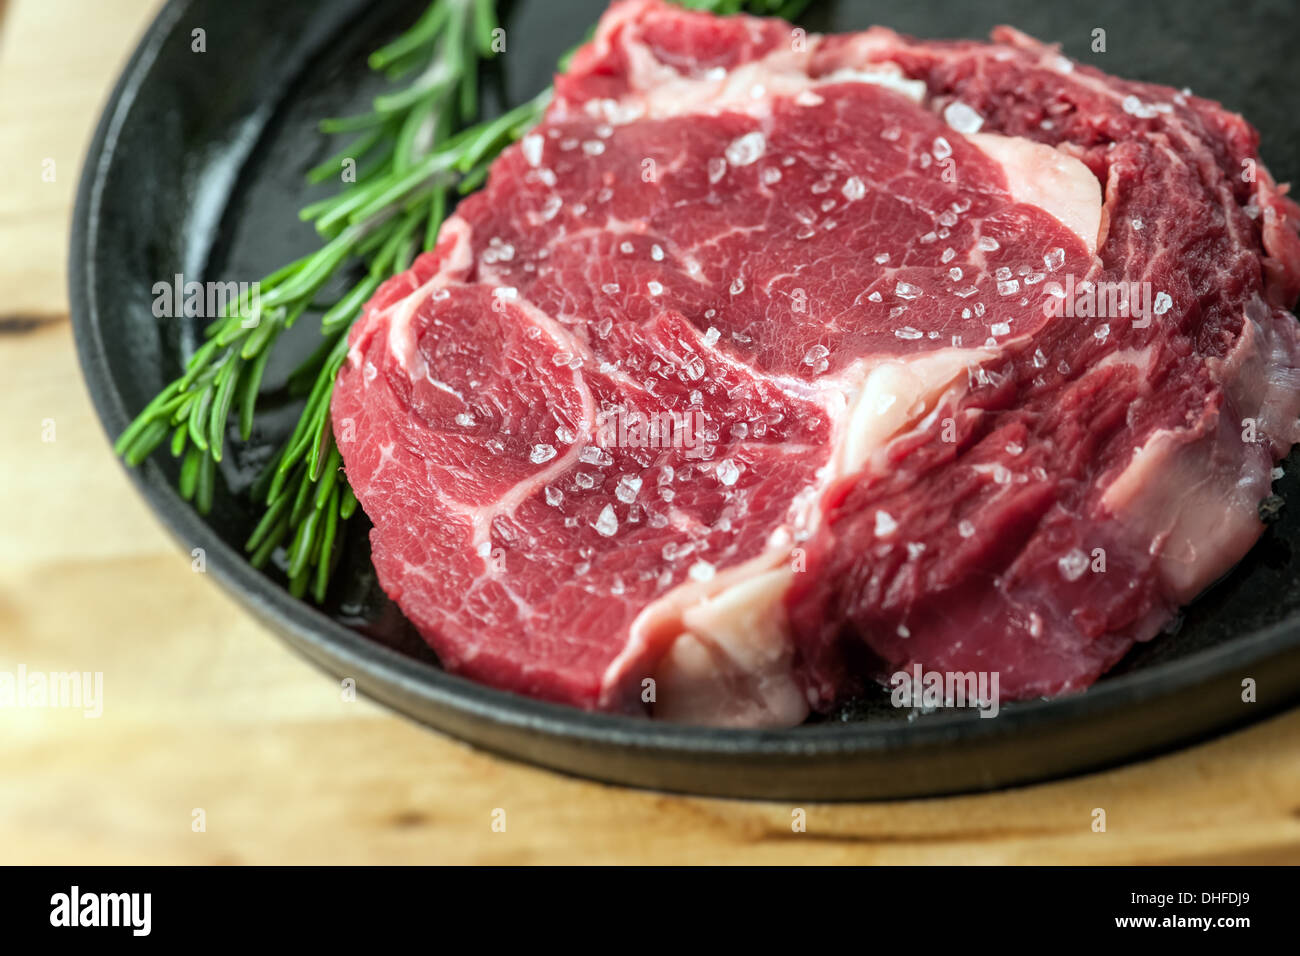 beef piece in frying pan - Stock Image